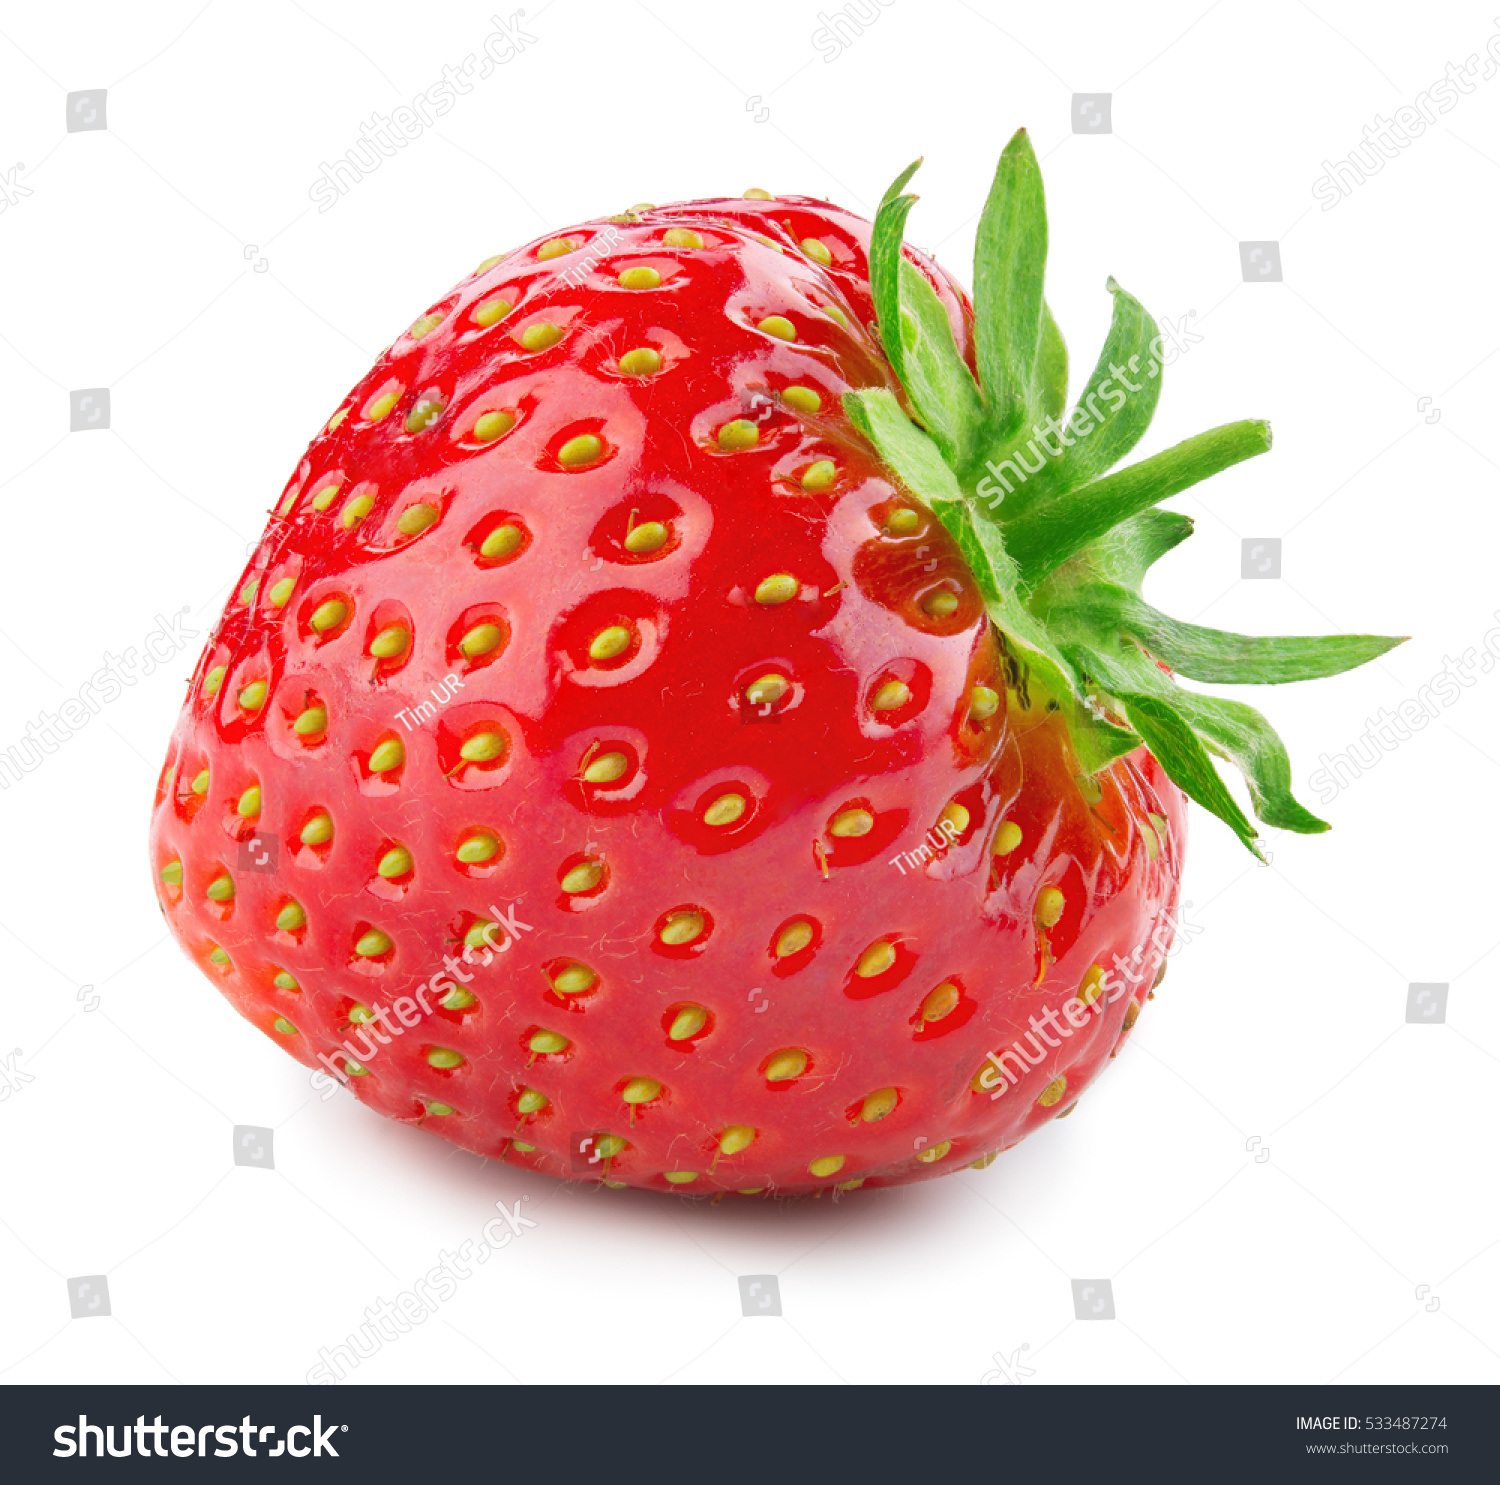 Strawberry Fresh berry isolated on white background